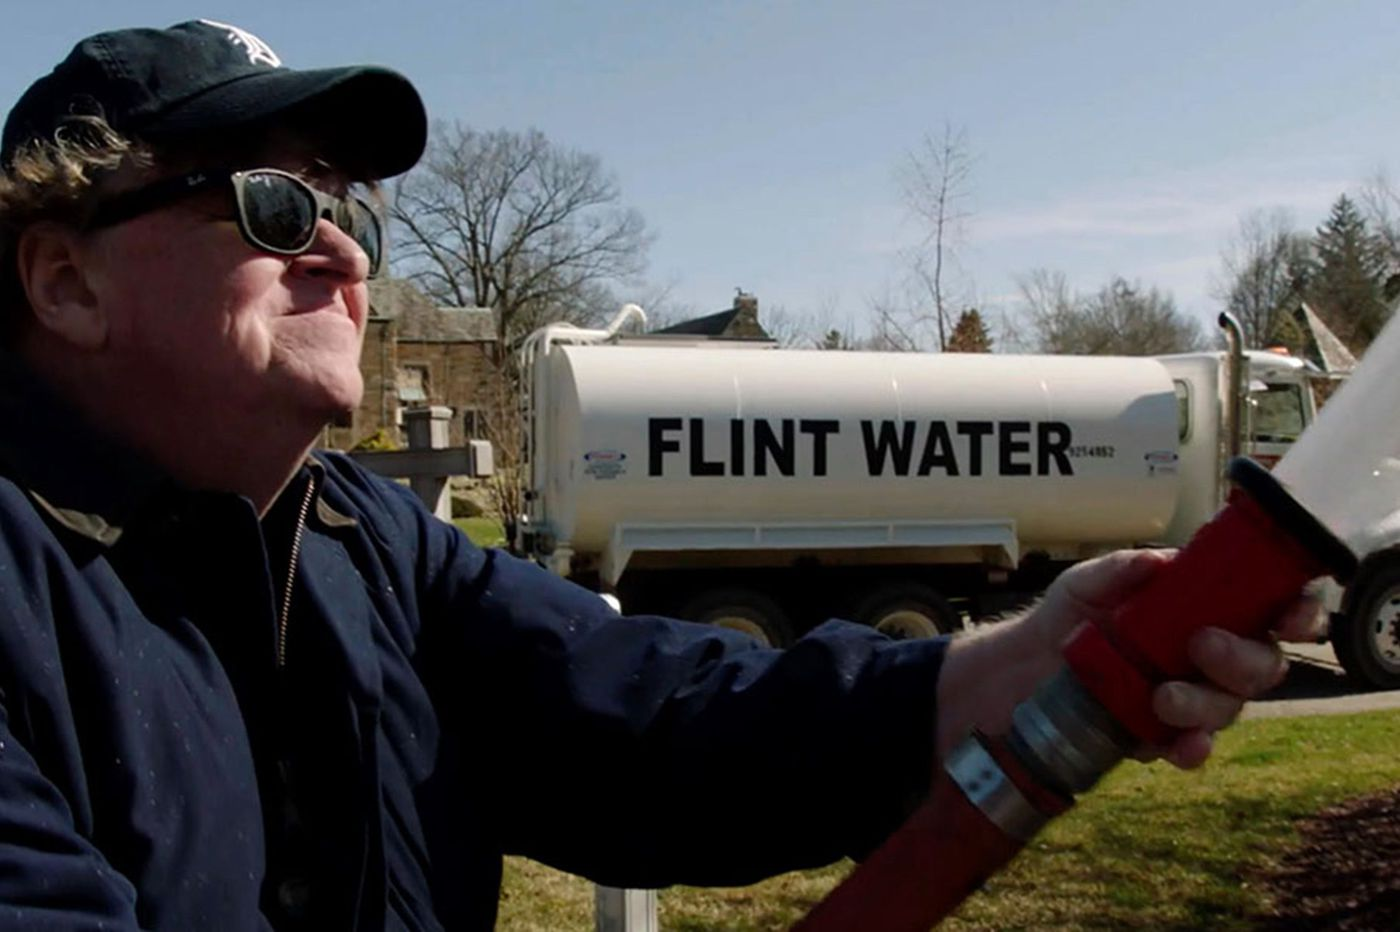 Michael Moore uses Flint to get fired up in 'Fahrenheit 11/9'